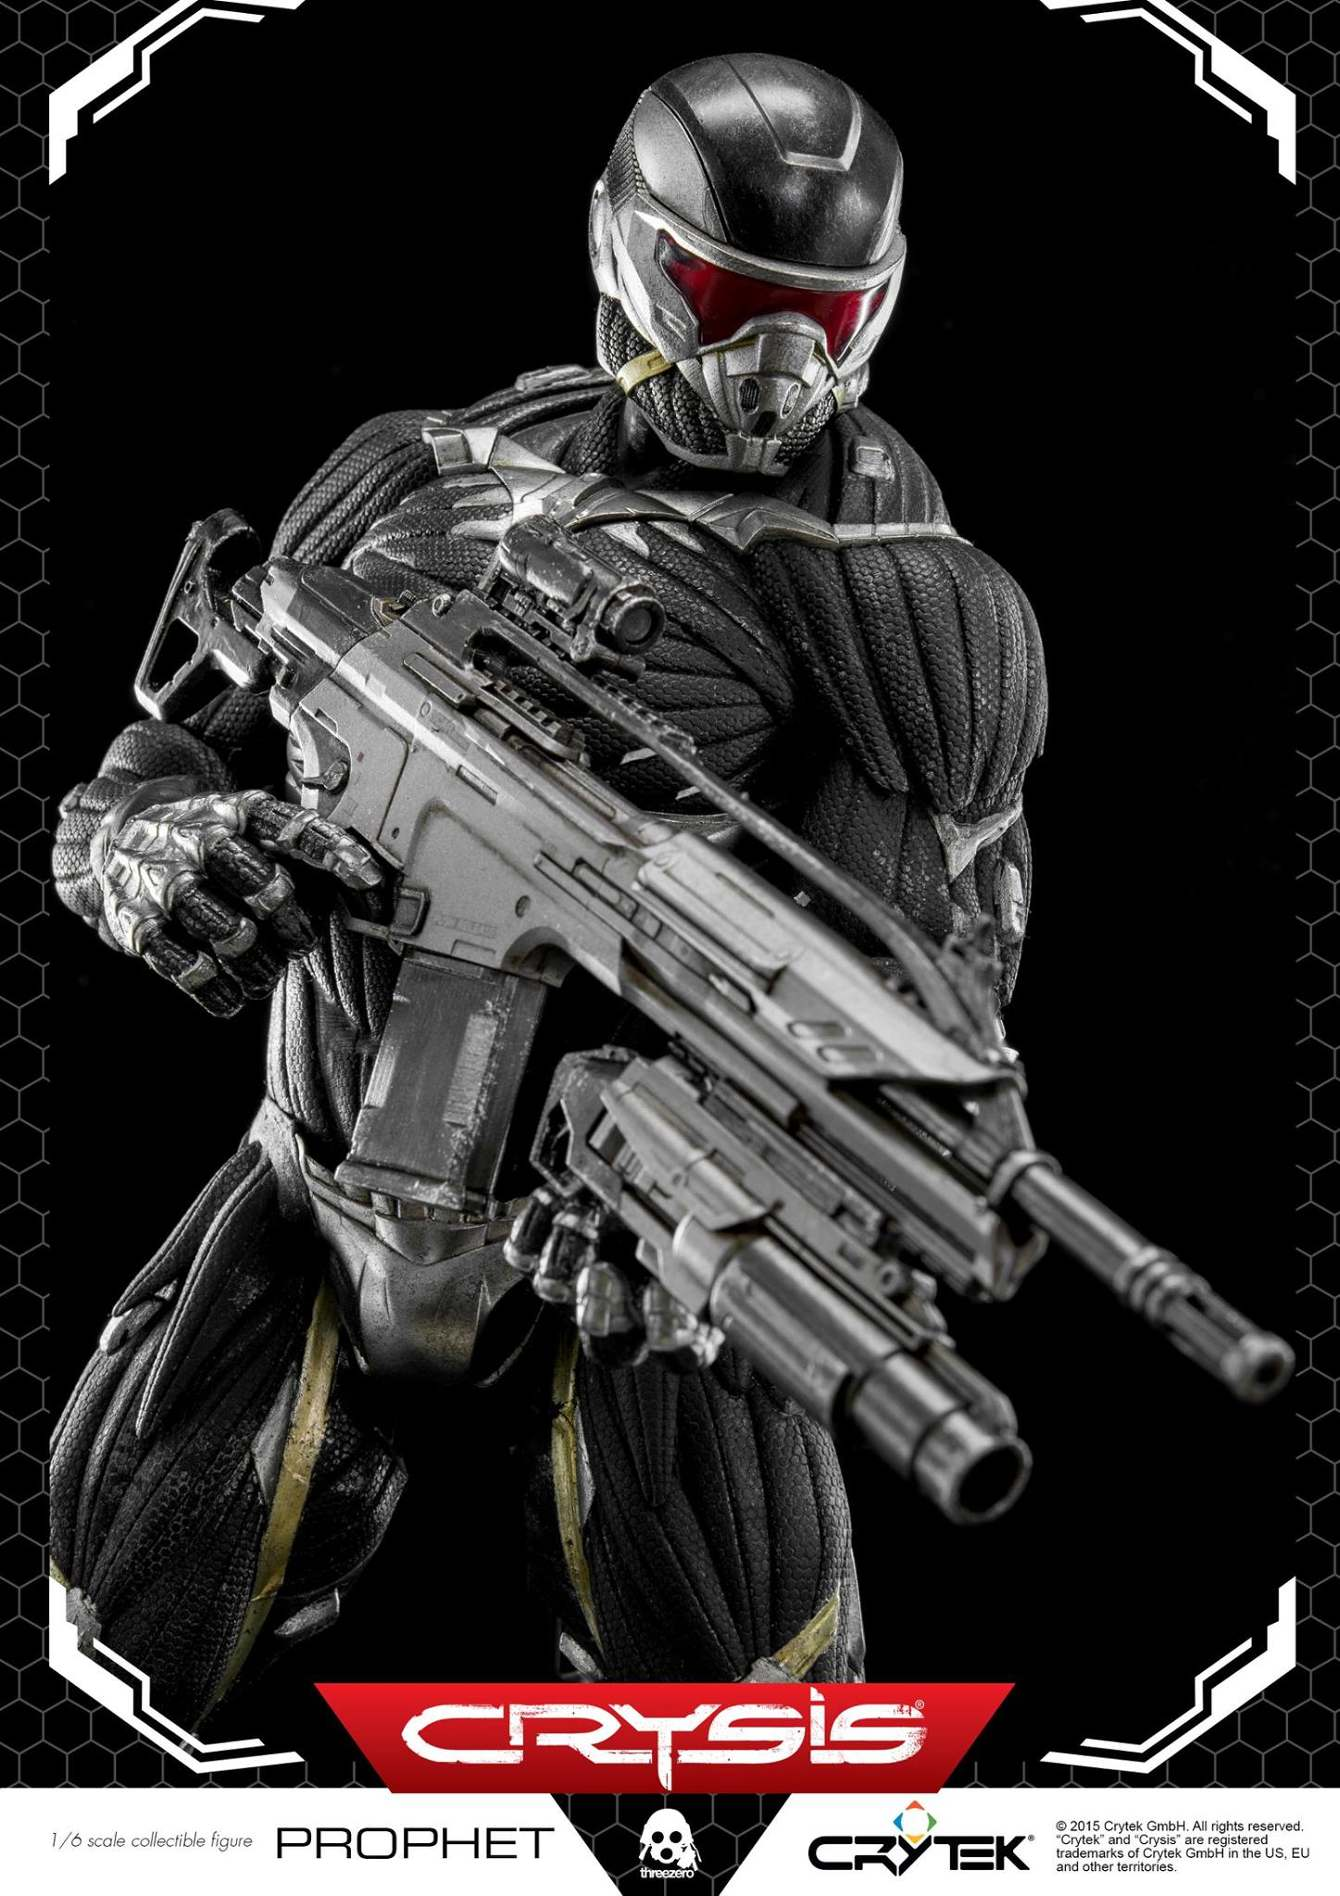 ThreeZero-Crysis-video-game-Prophet-CRY13_1340_c.jpg